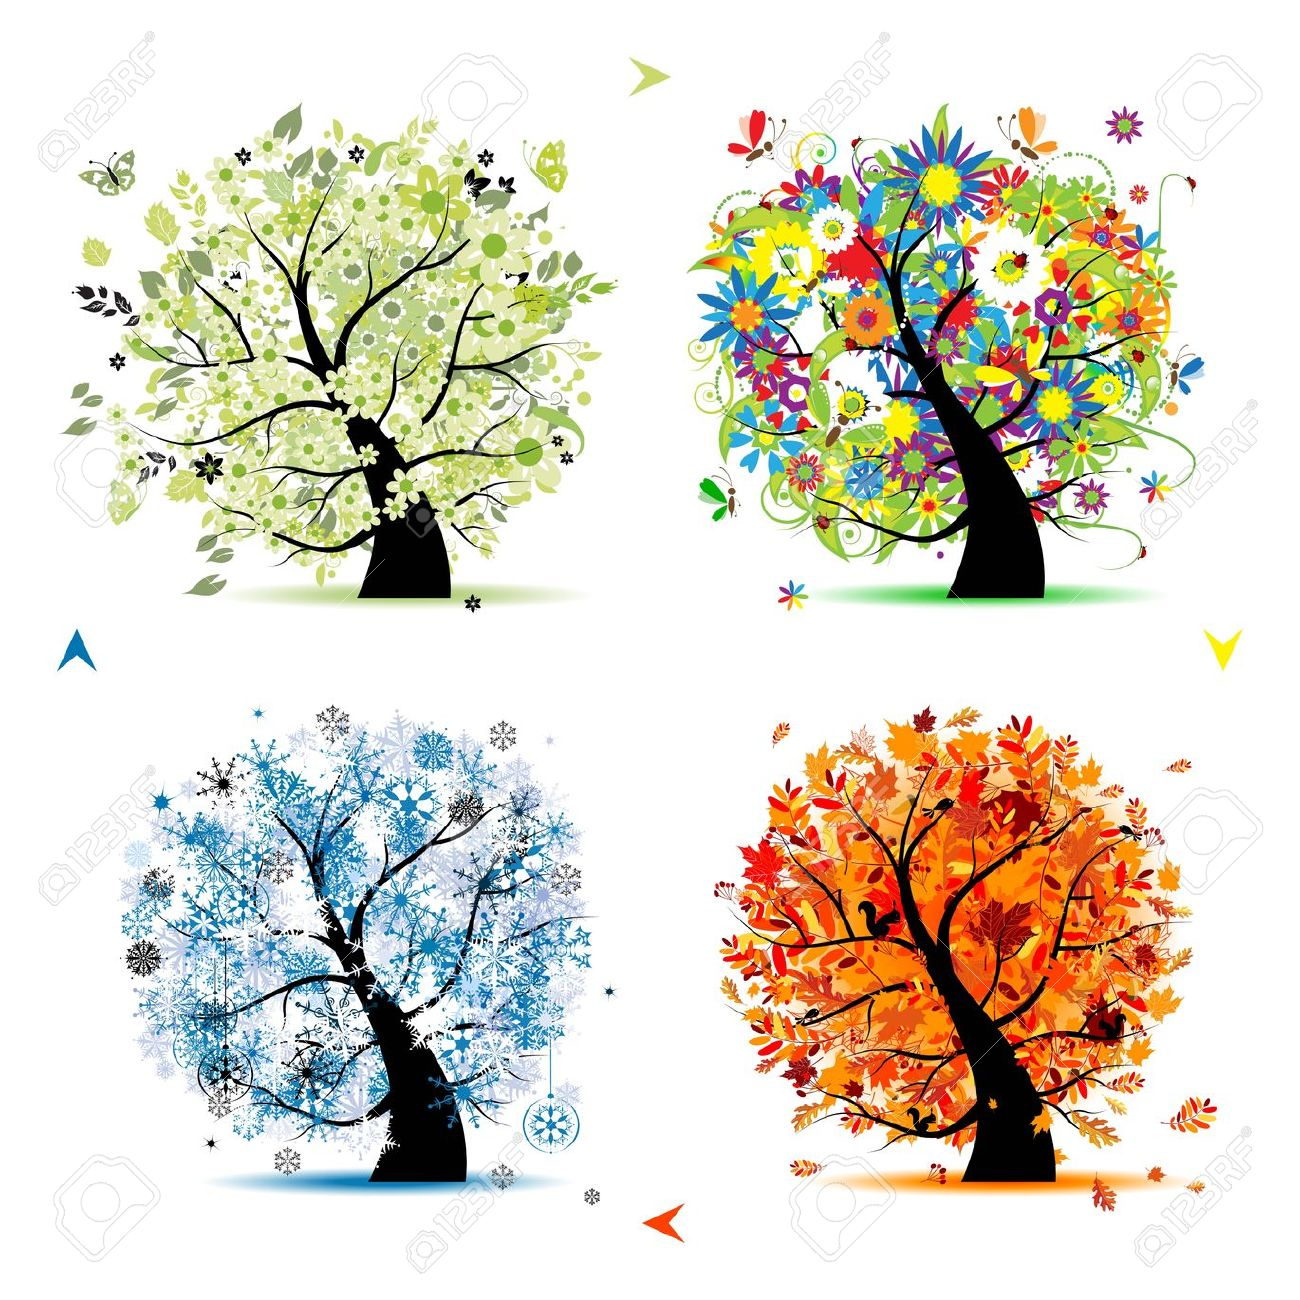 Images: Four Seasons Tree Clipart.